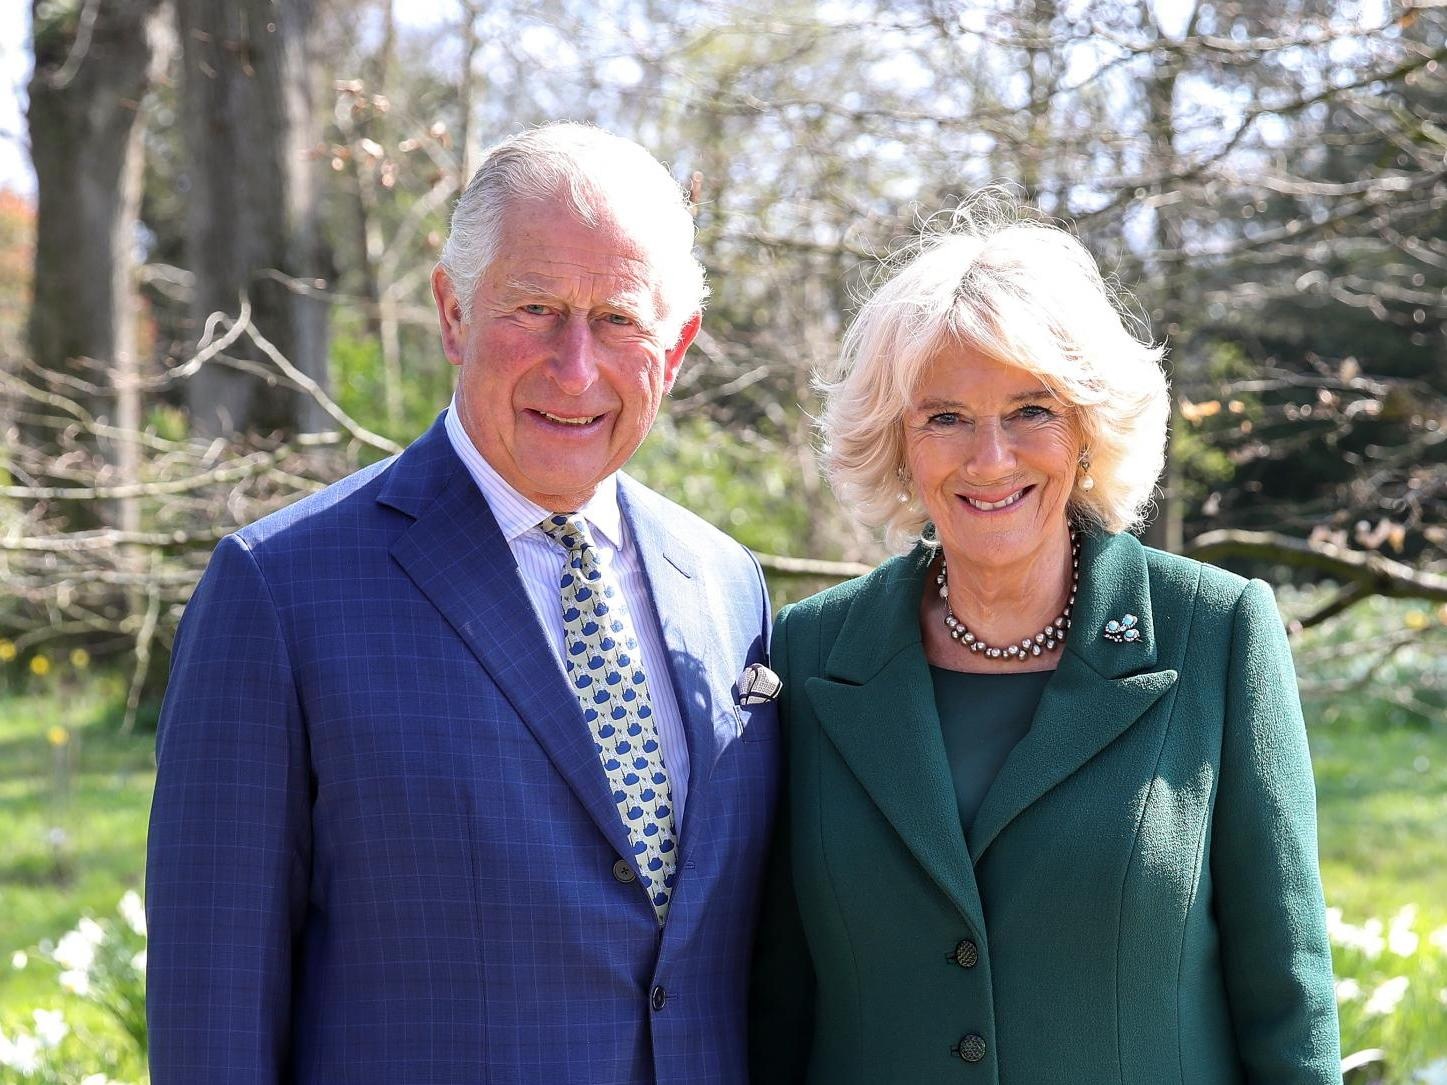 The Crown season 3: 'Fictional' plotline about Prince Charles and Camilla 'could cause a lot of damage', warns royal biographer